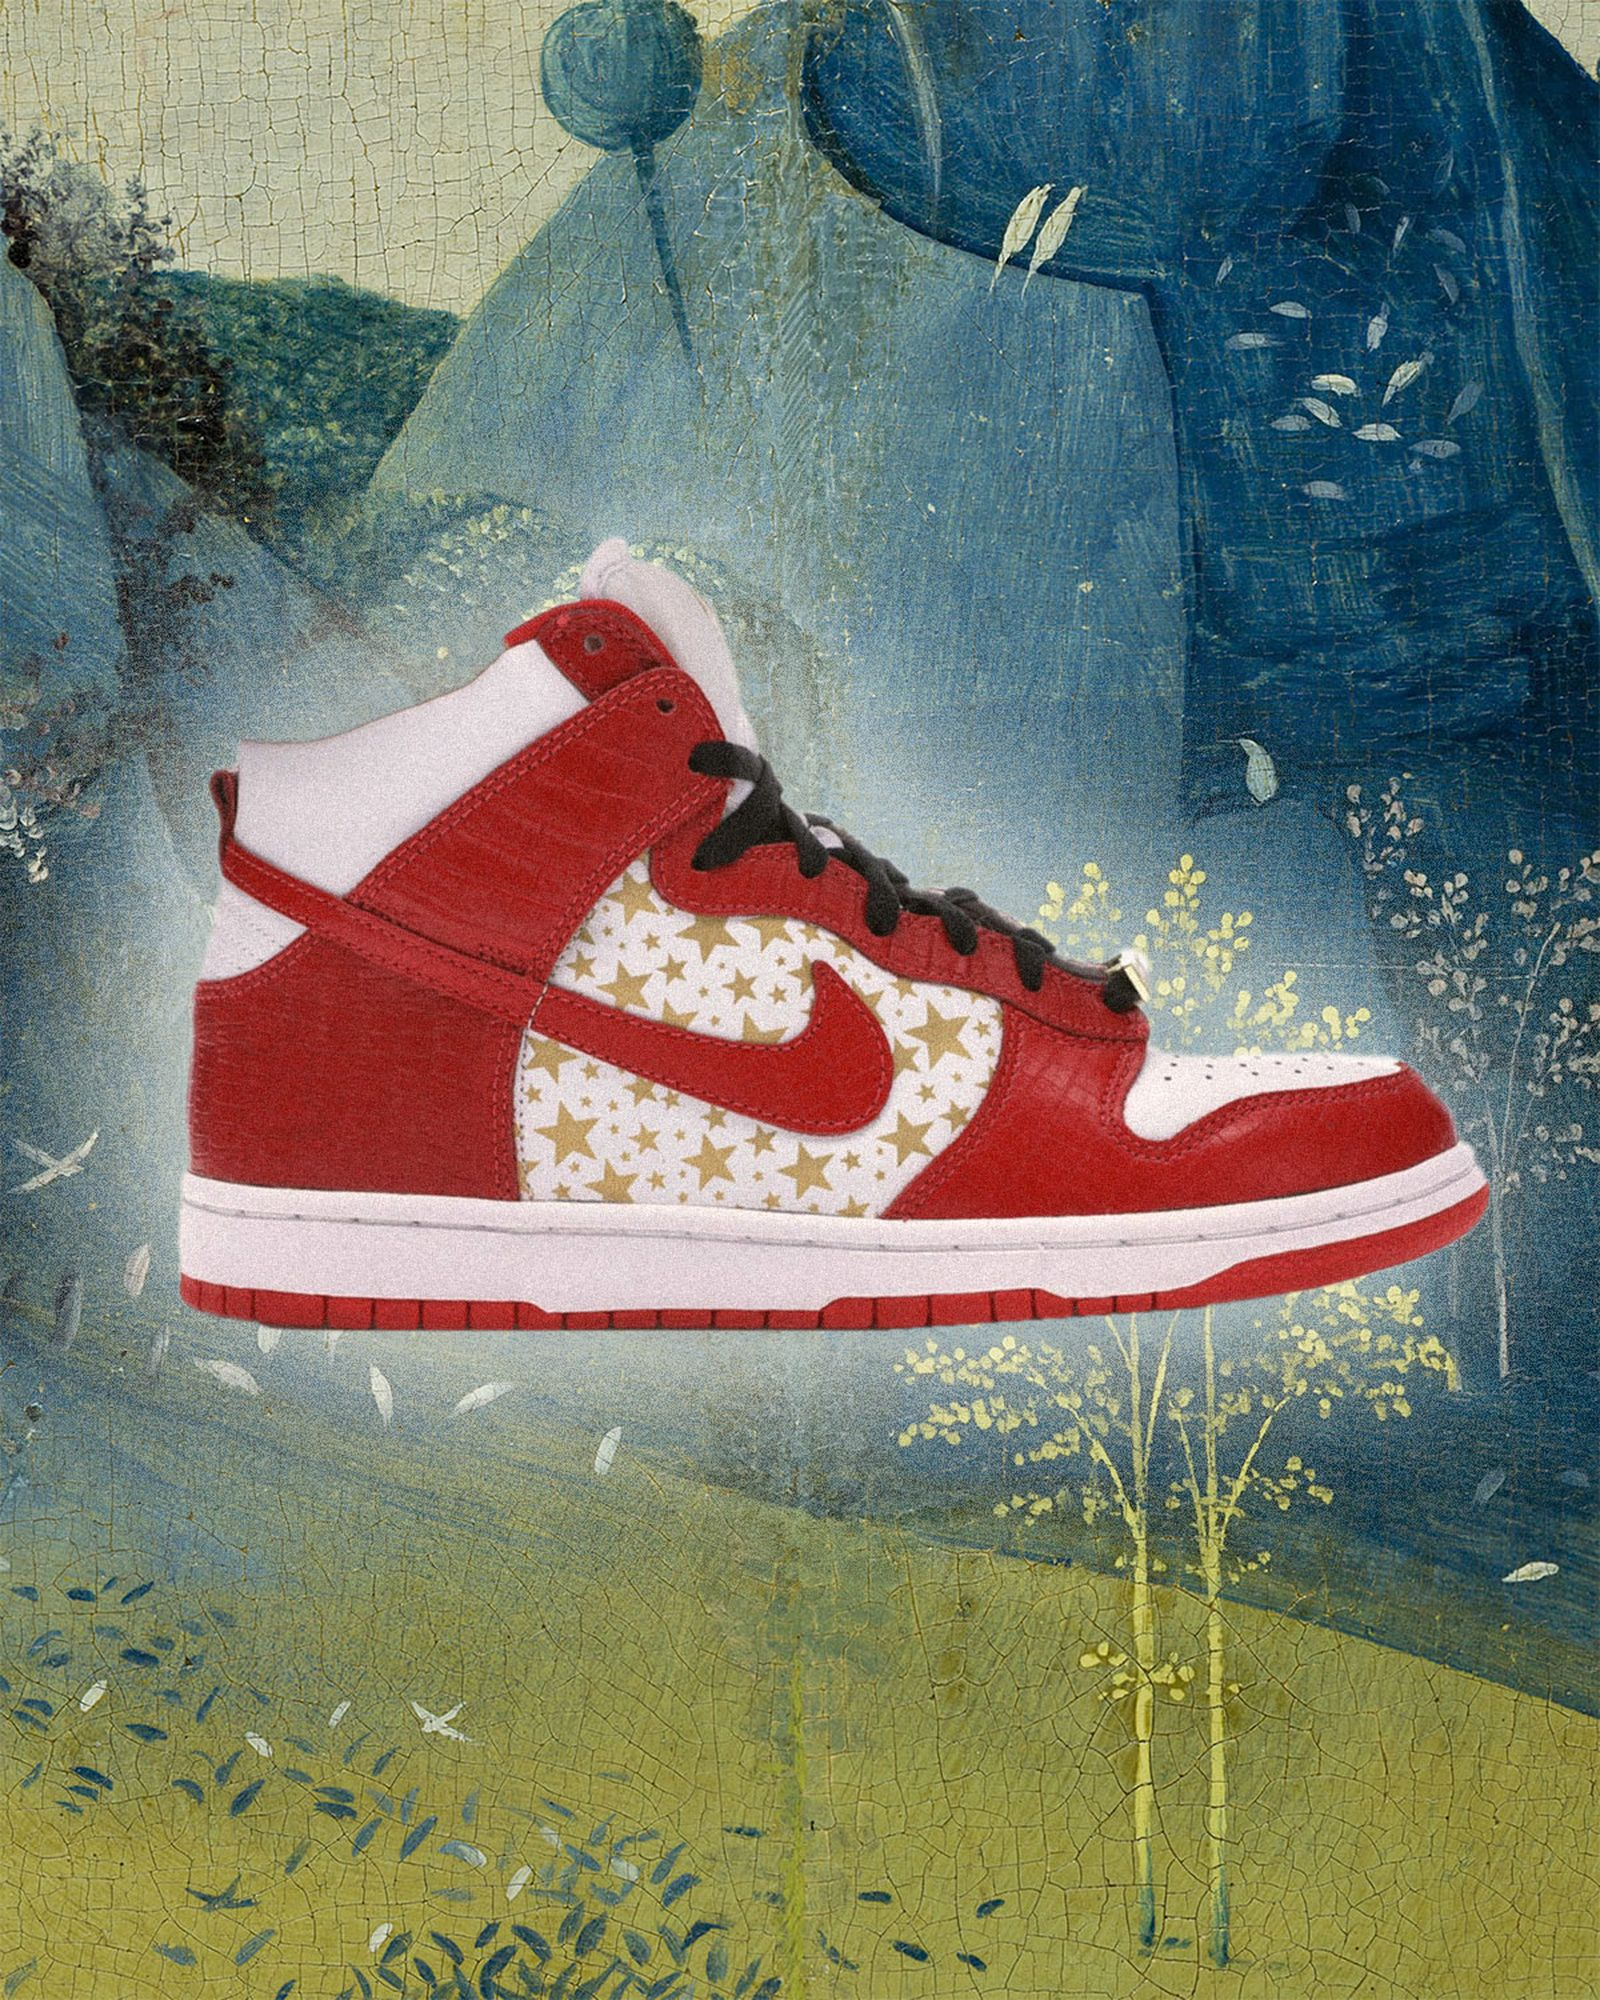 Nike-Dunk-High Pro-SB-Supreme- Red-Stars